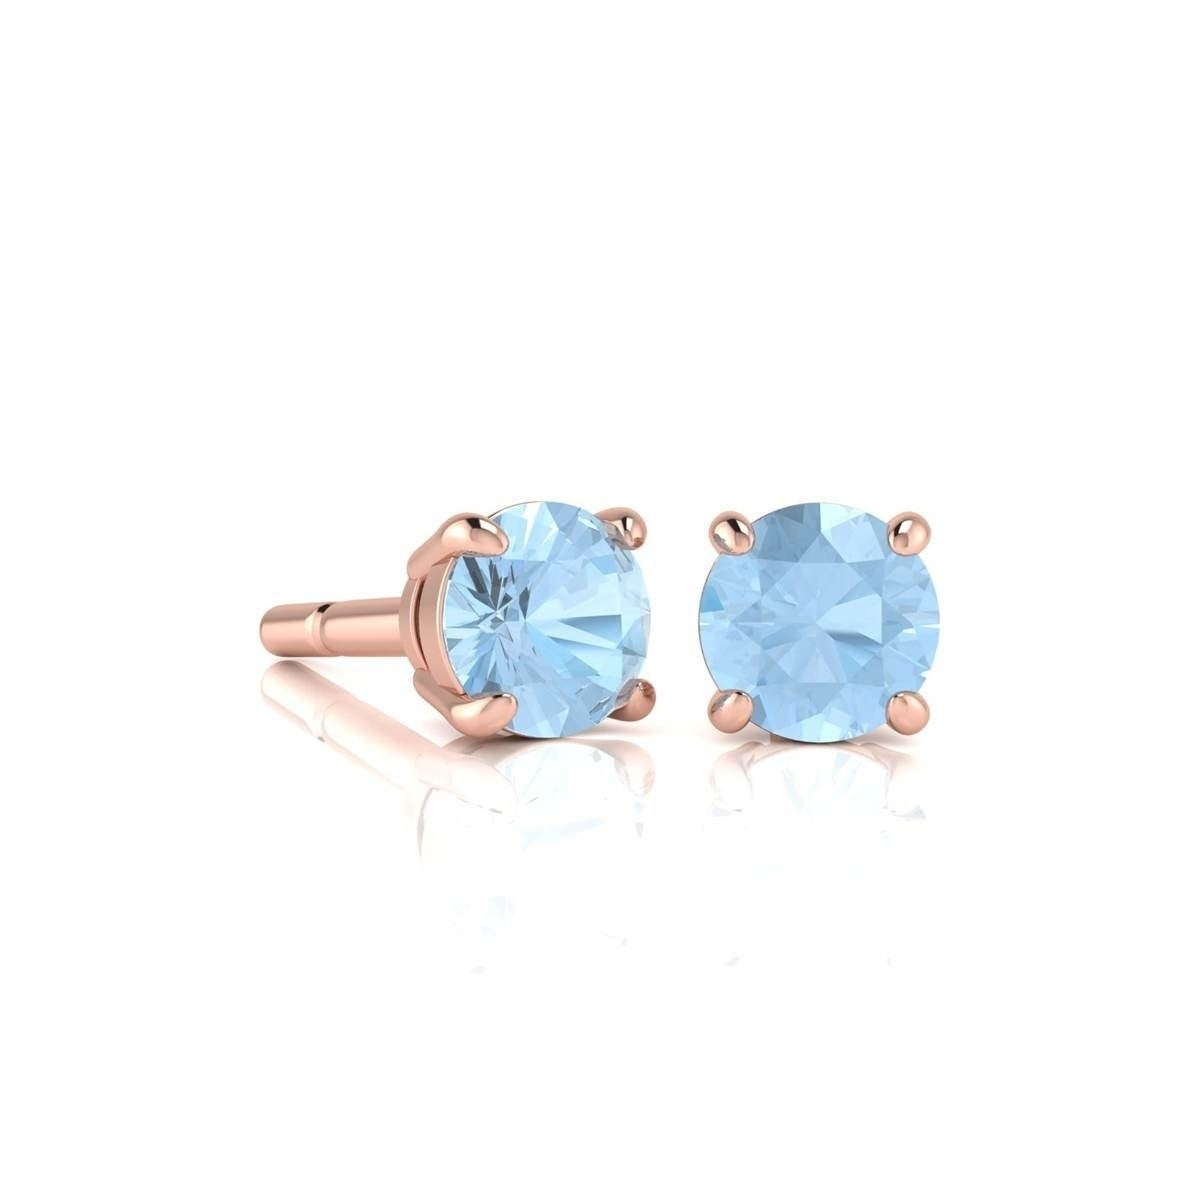 fullxfull stone crystal marine raw il earrings aquamarine rough stud quartz aqua products